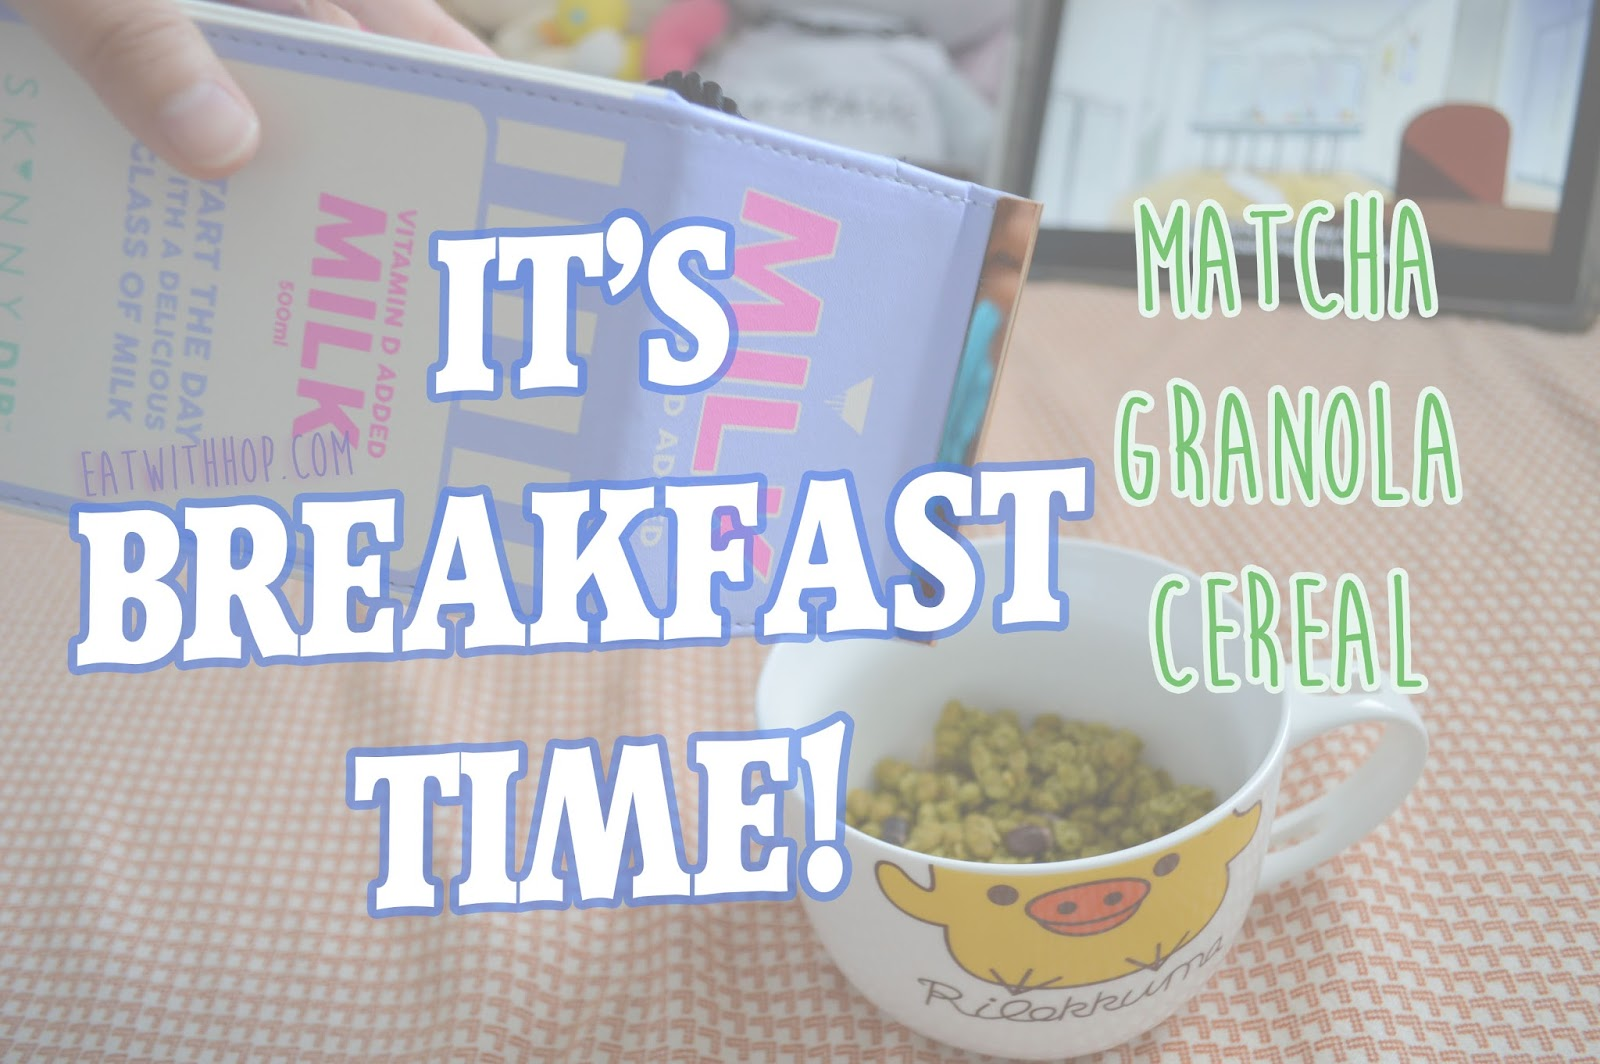 GOROTTO GRANOLA MATCHA CEREAL FOR BREAKFAST ! | CEREAL REVIEW